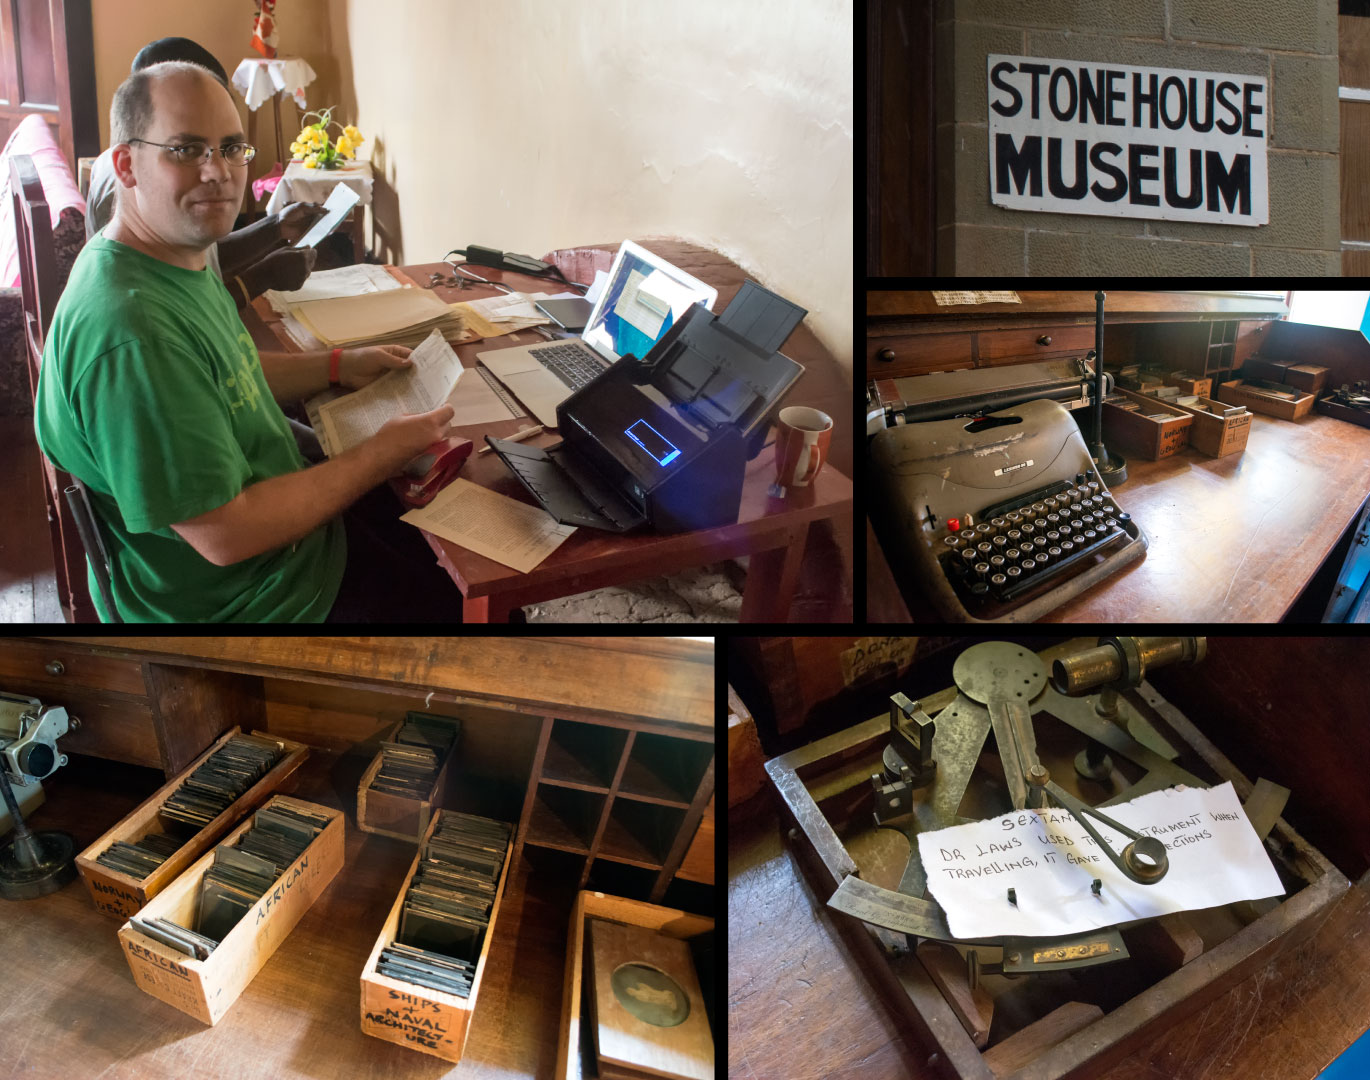 Artifacts in the Stonehouse museum in Livingstonia, Malawi.